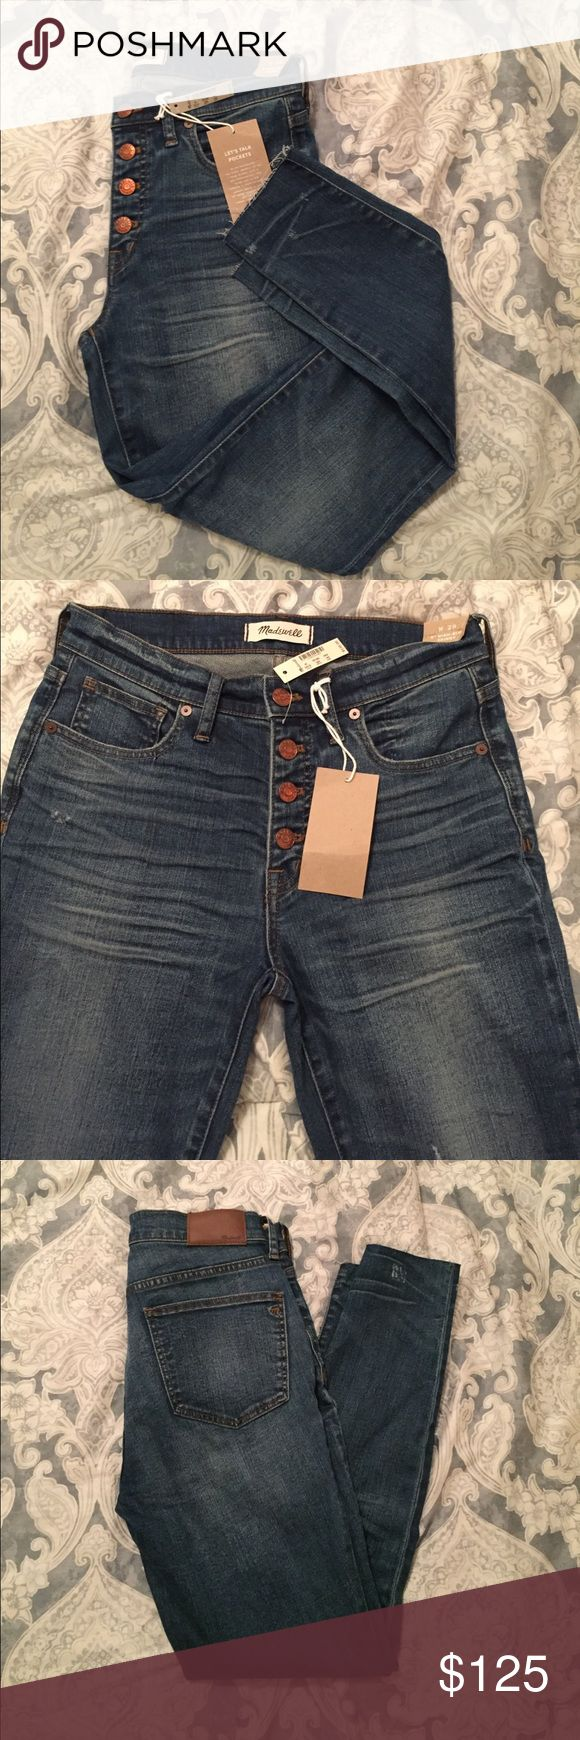 Madewell high rise button fly jeans Madewell 9 inch high rise button fly skinny jeans. New. Madewell Jeans Skinny